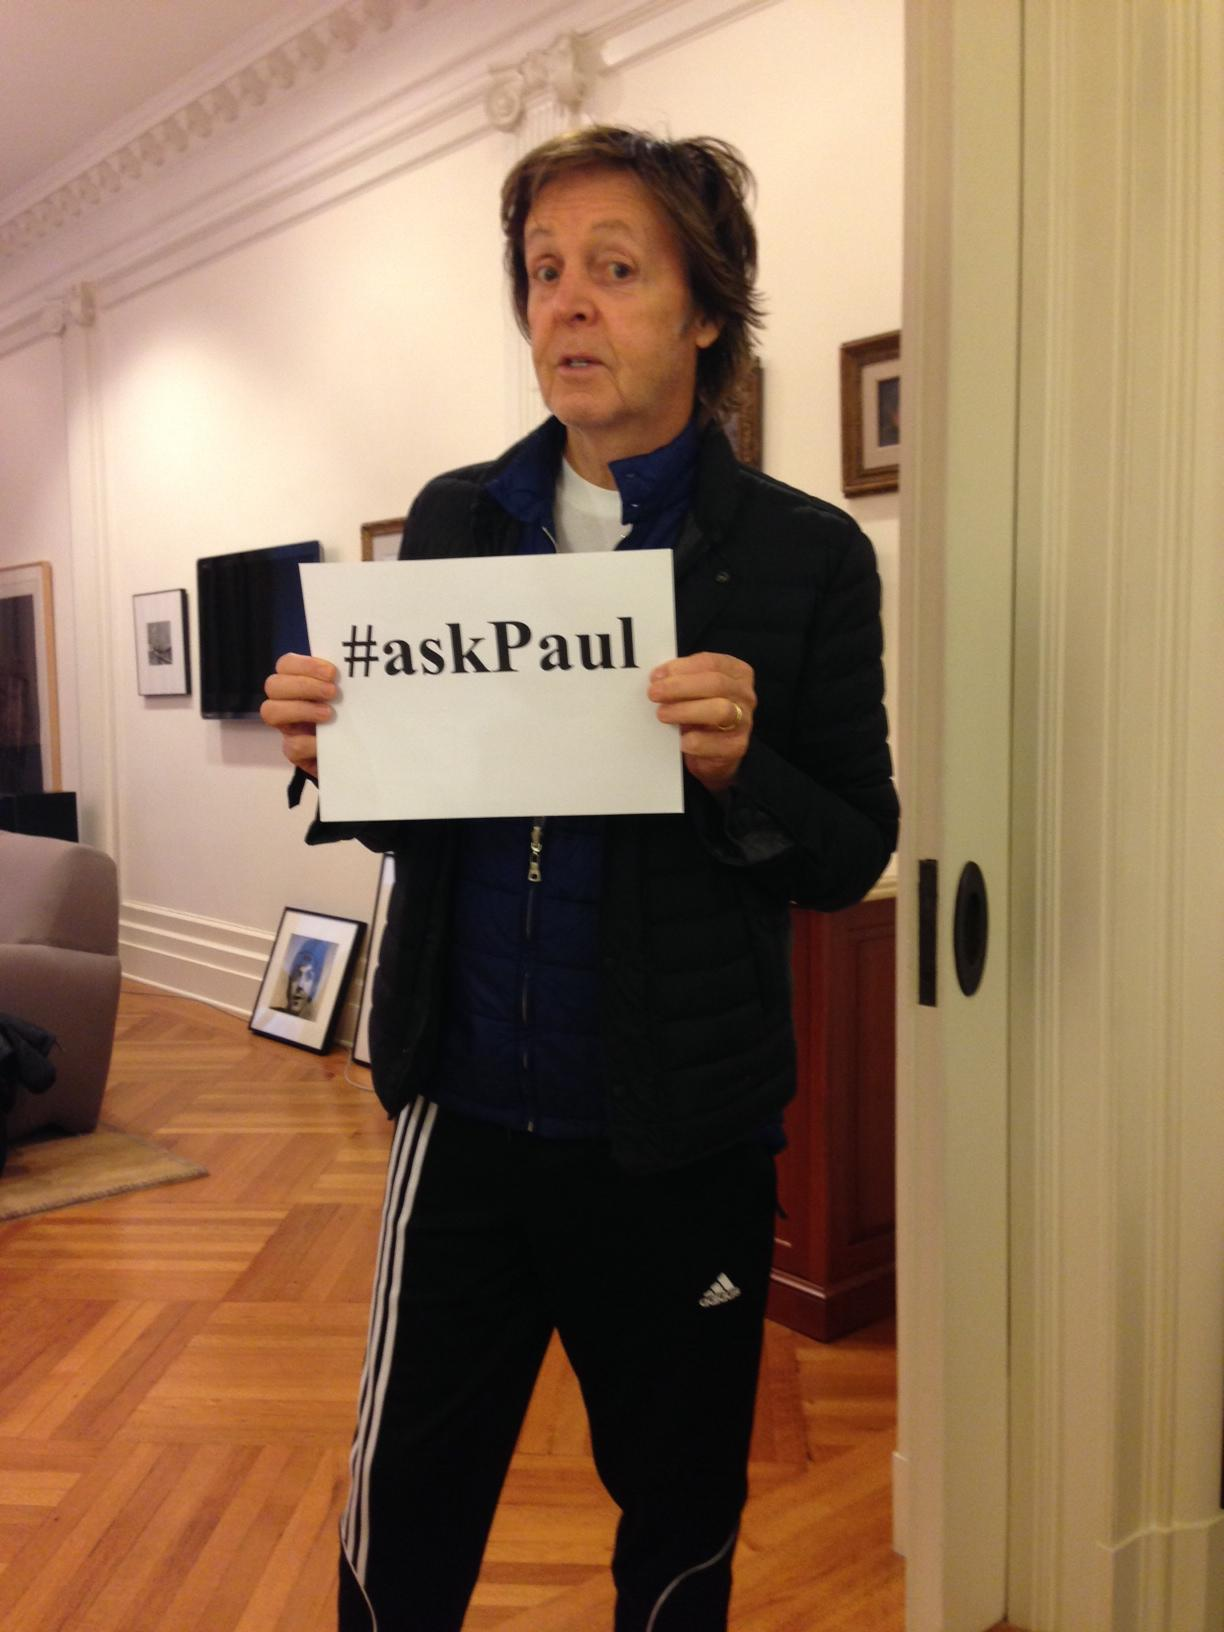 Tweet your questions now! #askPaul http://t.co/3vkXCLenWw